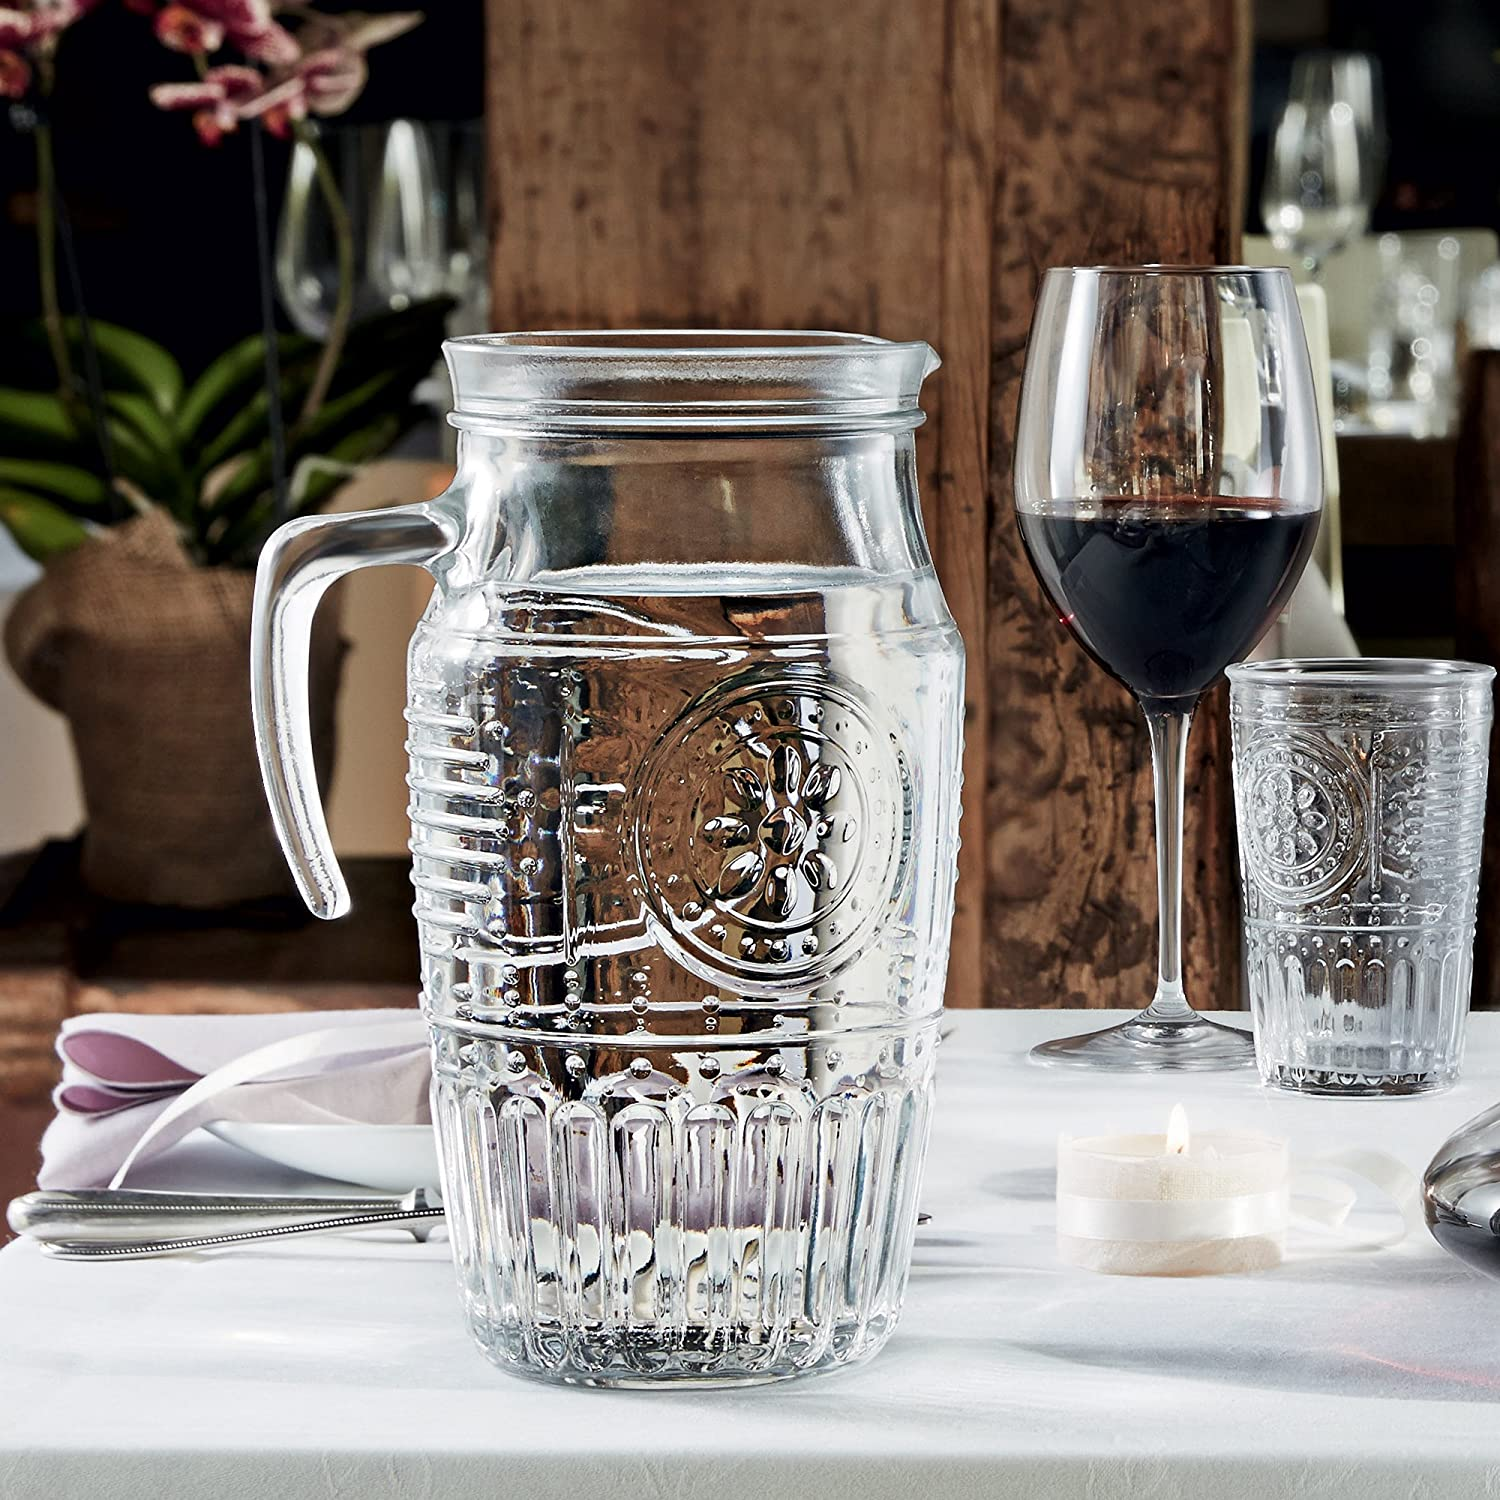 Bormioli 'Romantica' glass carafe with ice compartment, carafe filling capacity of 1.8 litres, keeps drinks cool without becoming watered down, glass embossing in a beautiful vintage design Bormioli Rocco 335942MQD321990